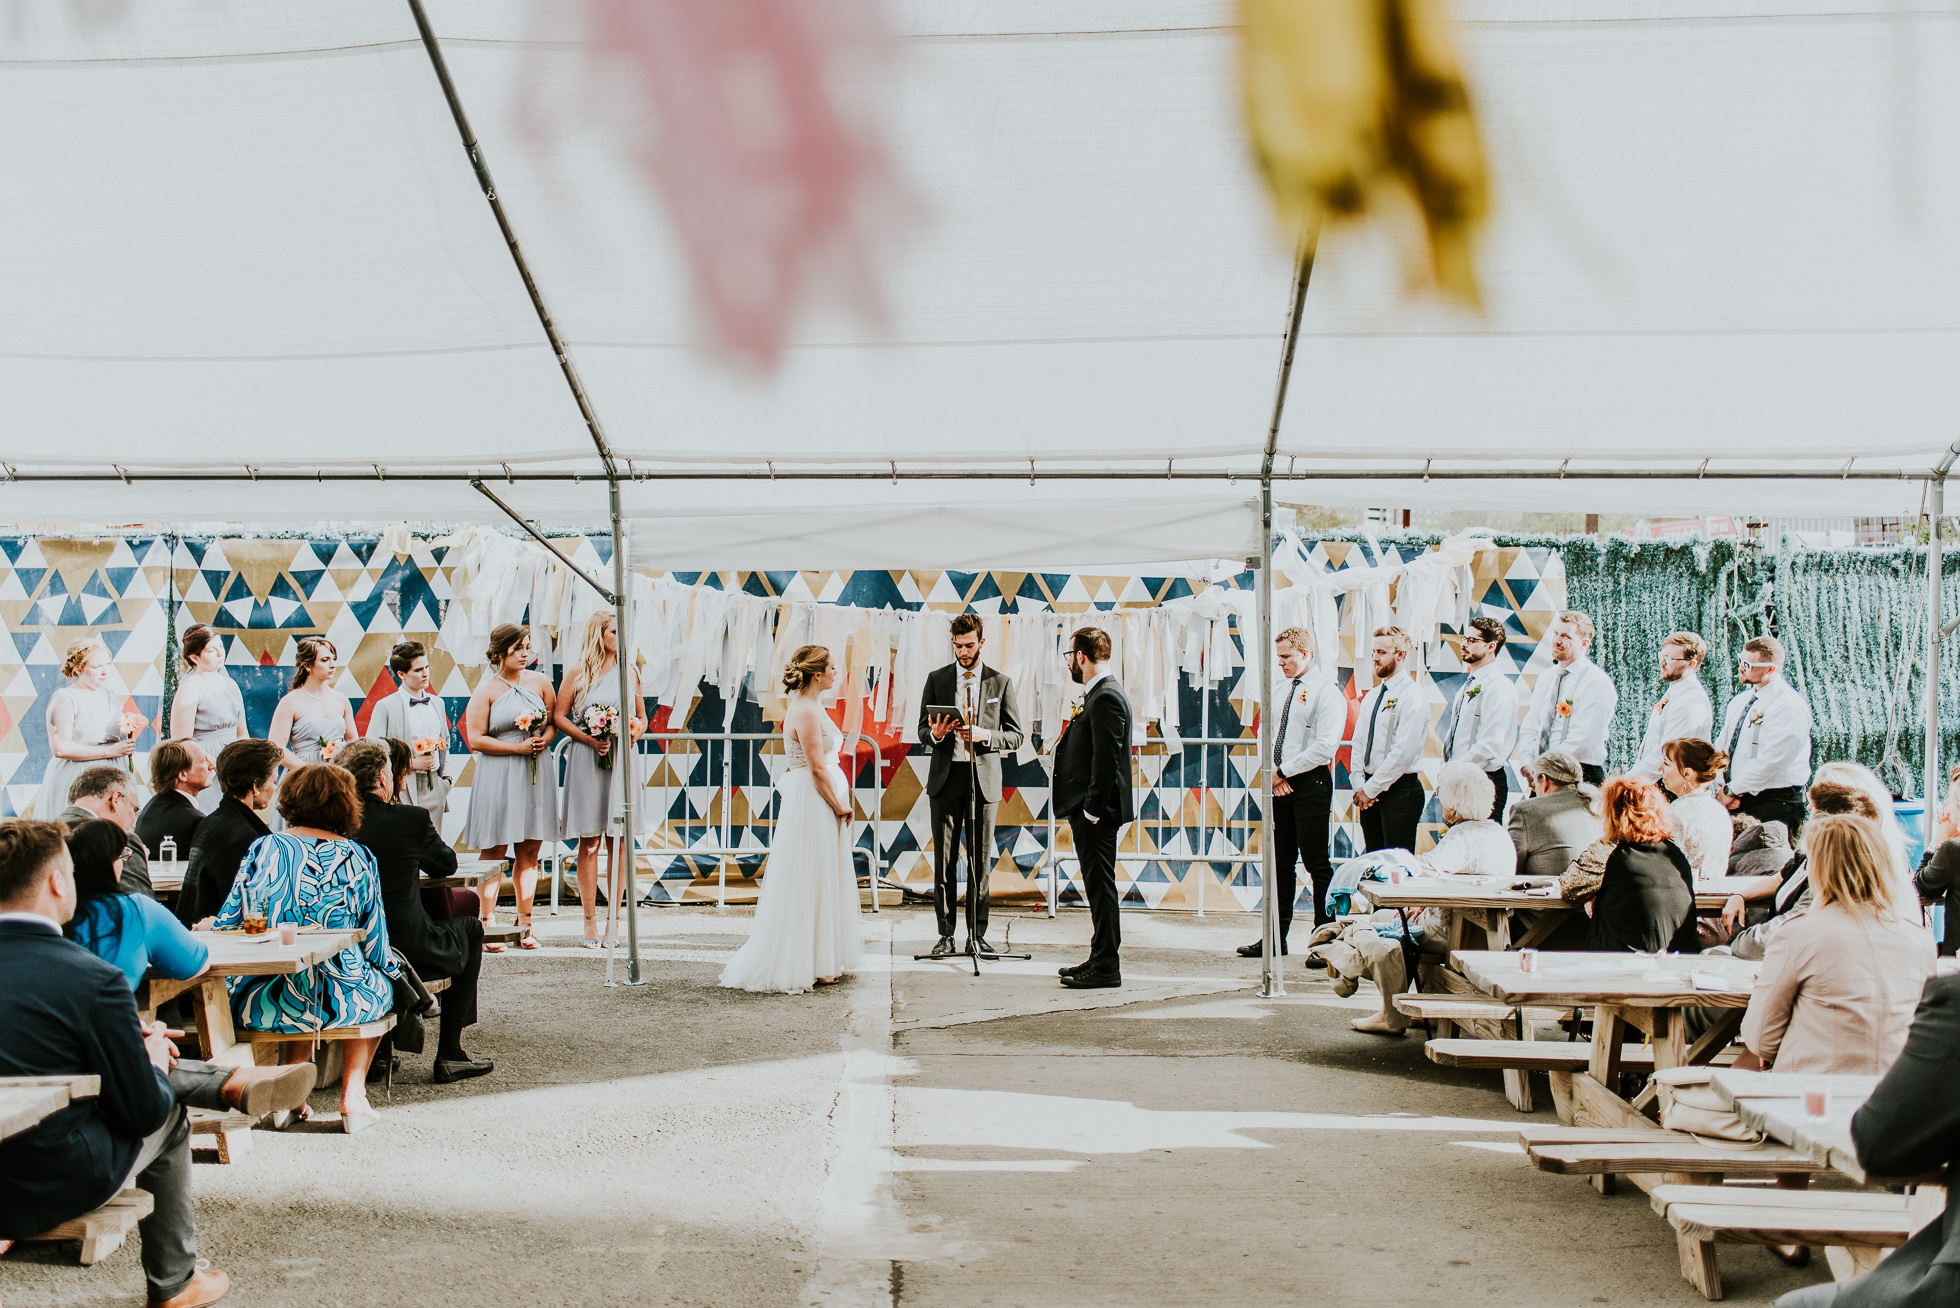 outdoor wedding ceremony photographed by Traverse The Tides